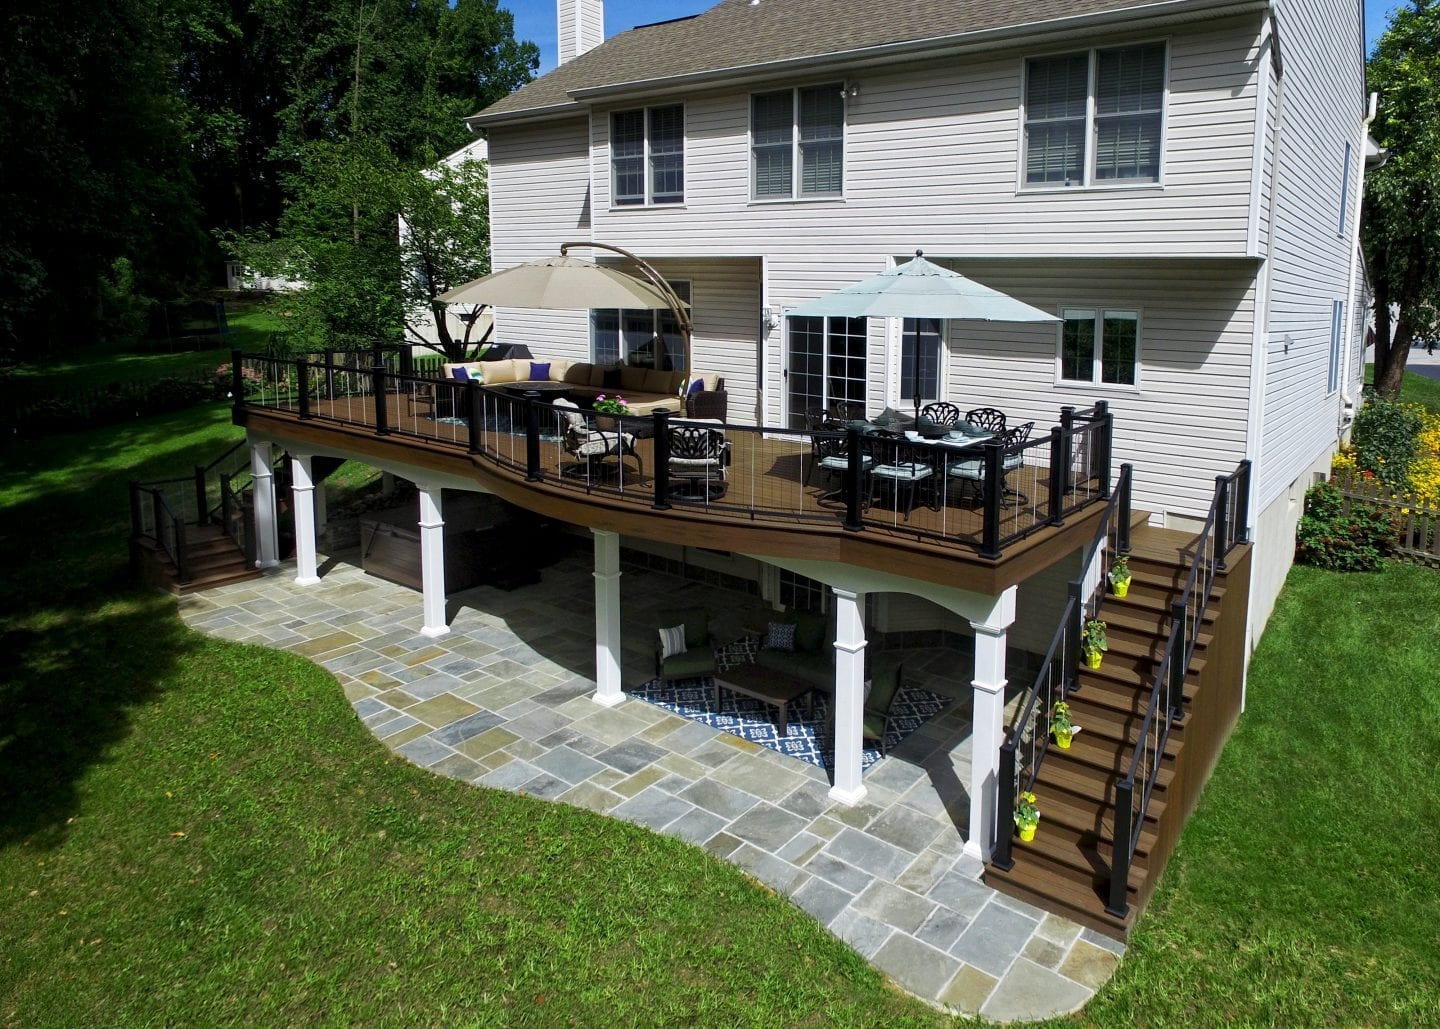 Elevated Deck Designs | Safety Features for Above Ground Decks on Back Deck Ideas For Ranch Style Homes  id=25752